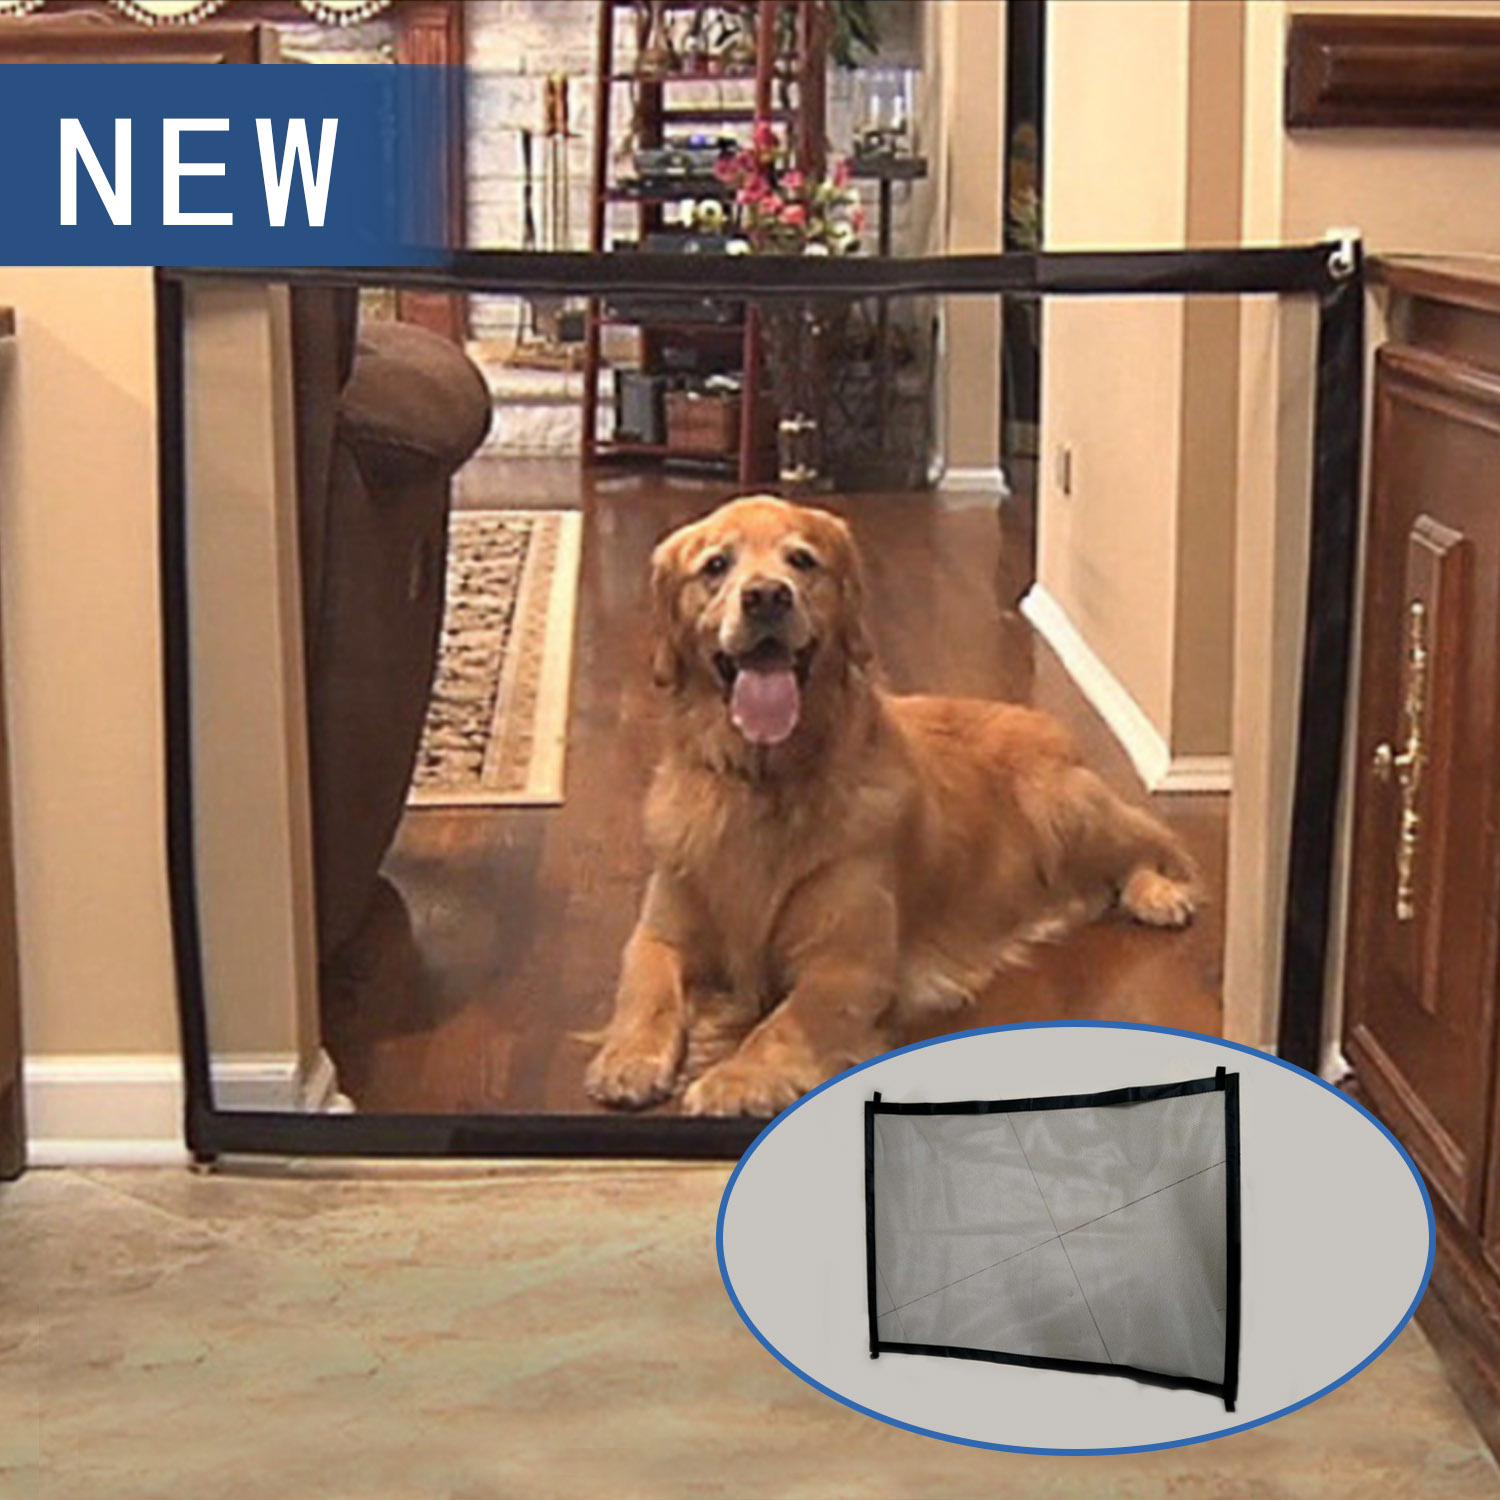 Portable Pet Barrier Fences Safety Guard Gate Fence For Doorways Stairs Bedroom Kitchen Separation Guard Dog Baby Safety Fences